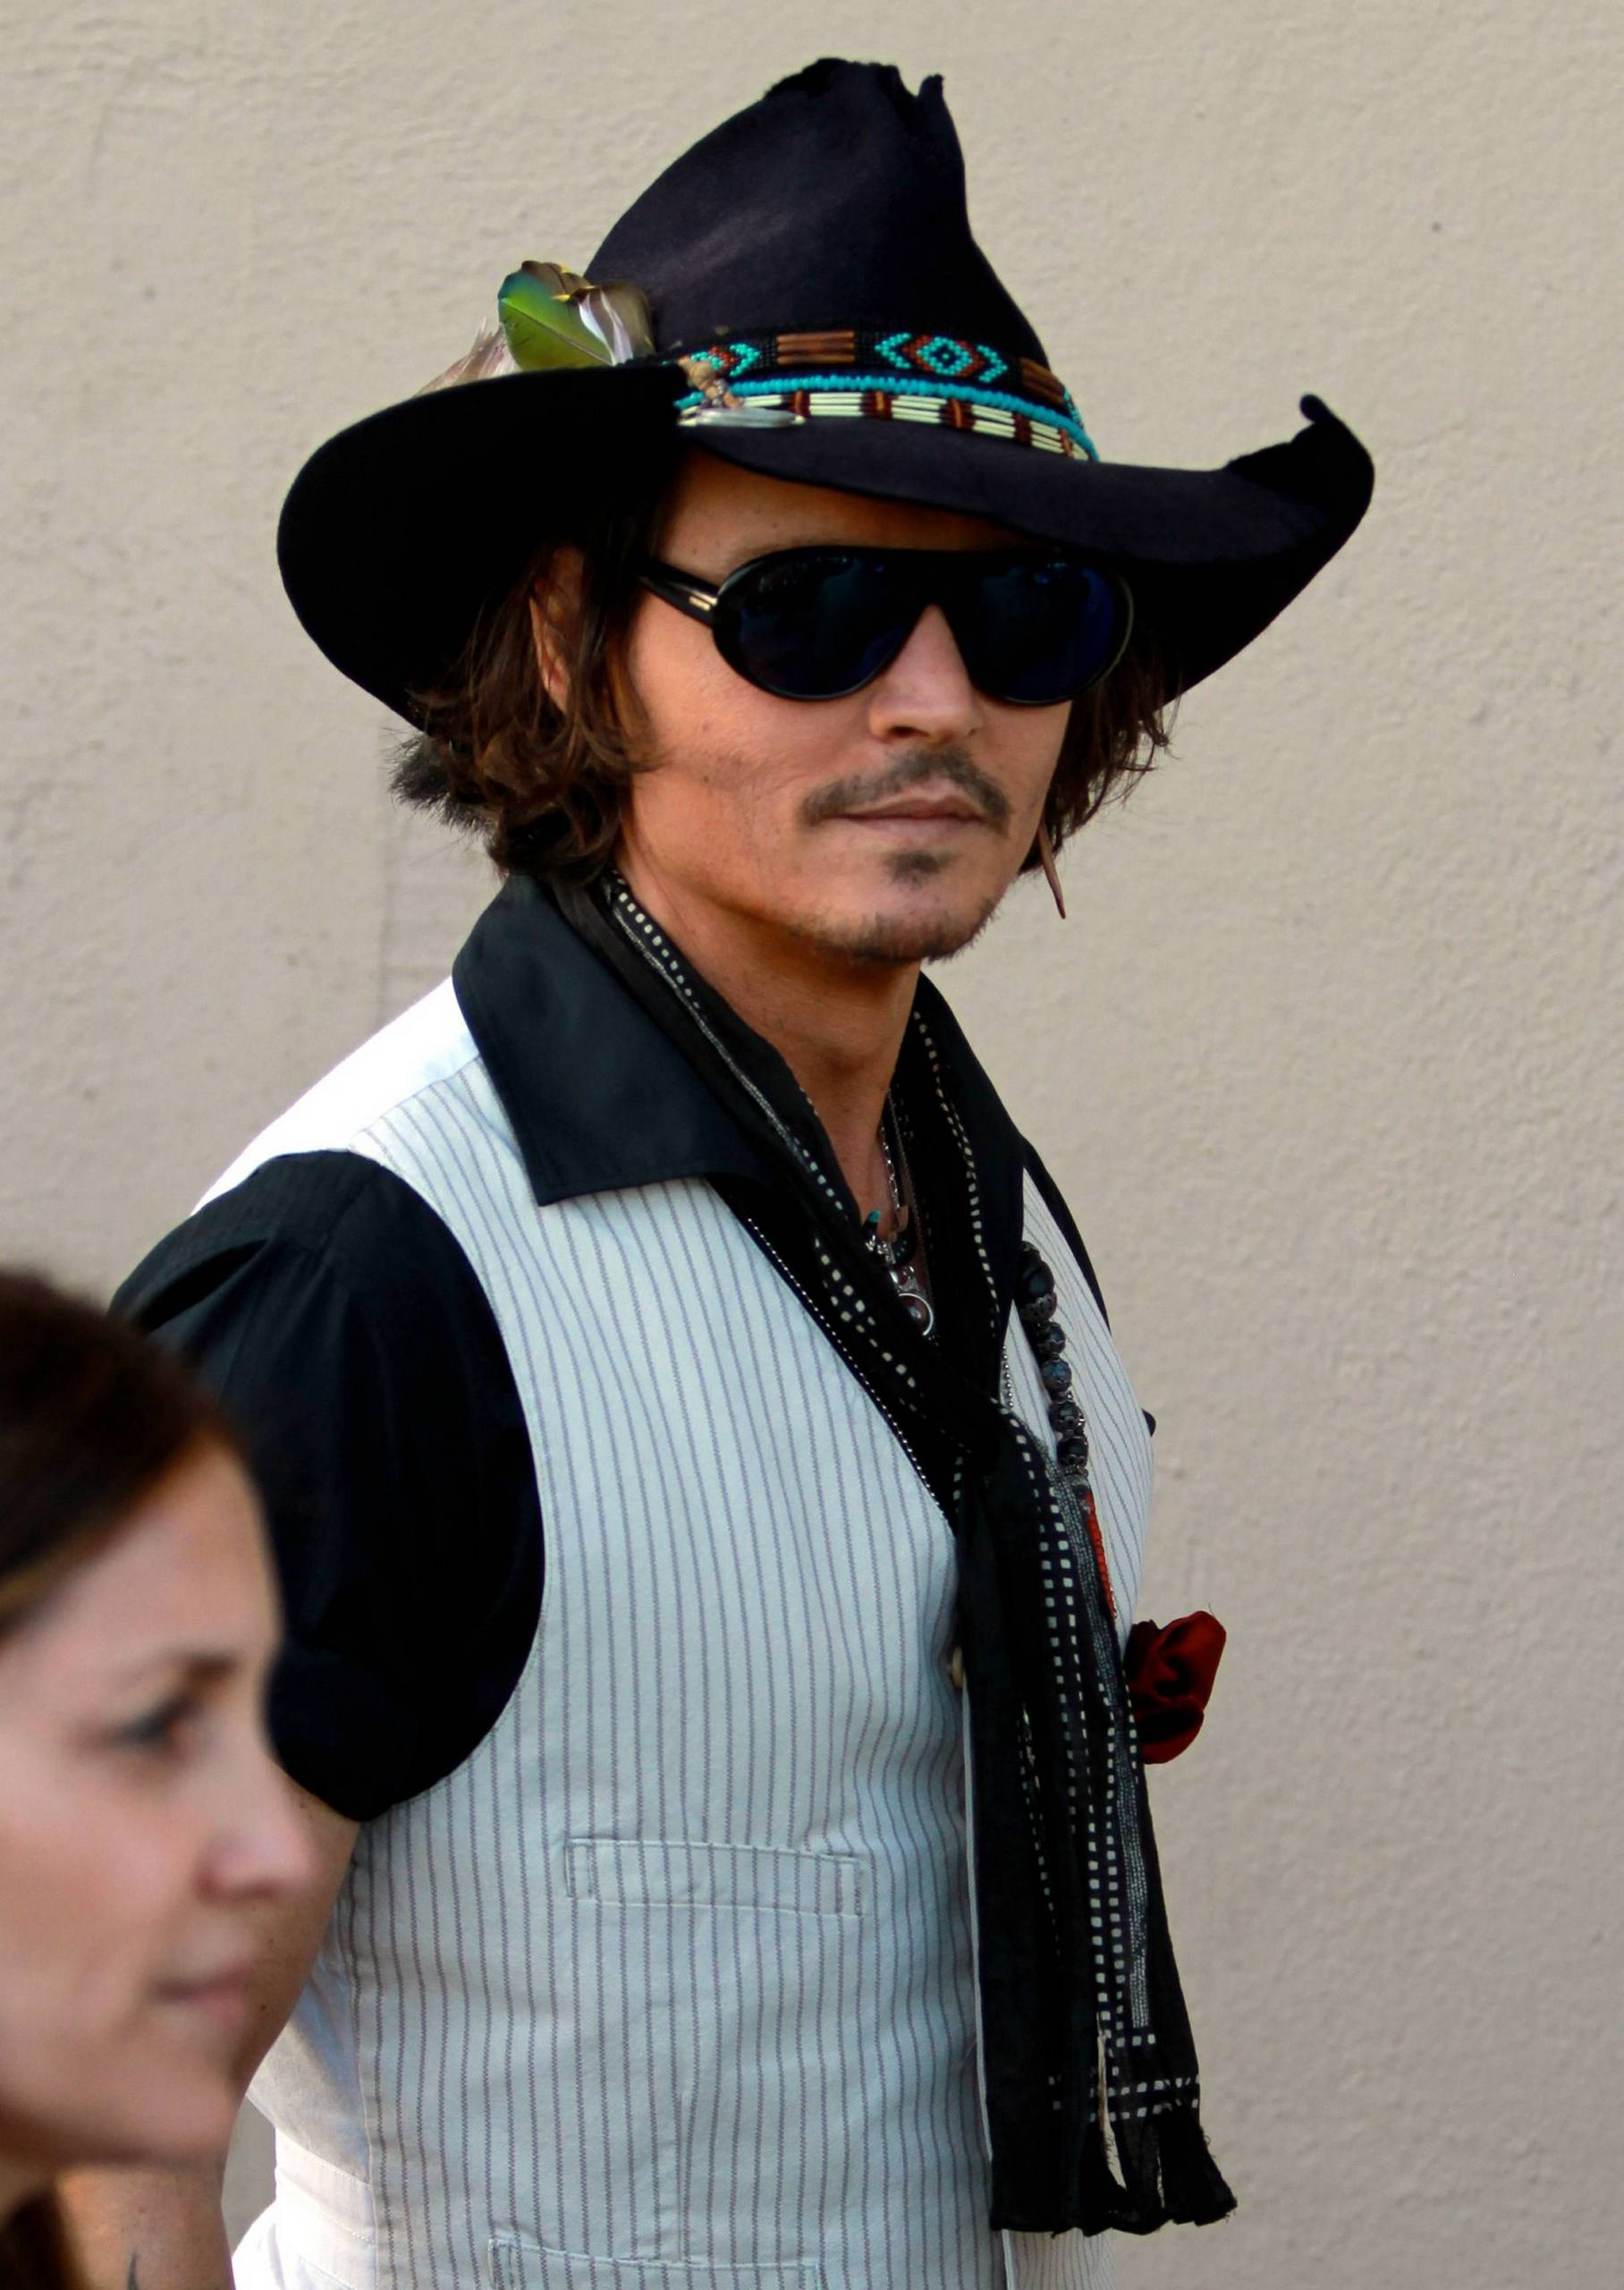 Johnny Depp on his way to Jimmy Kimmel Show 2012